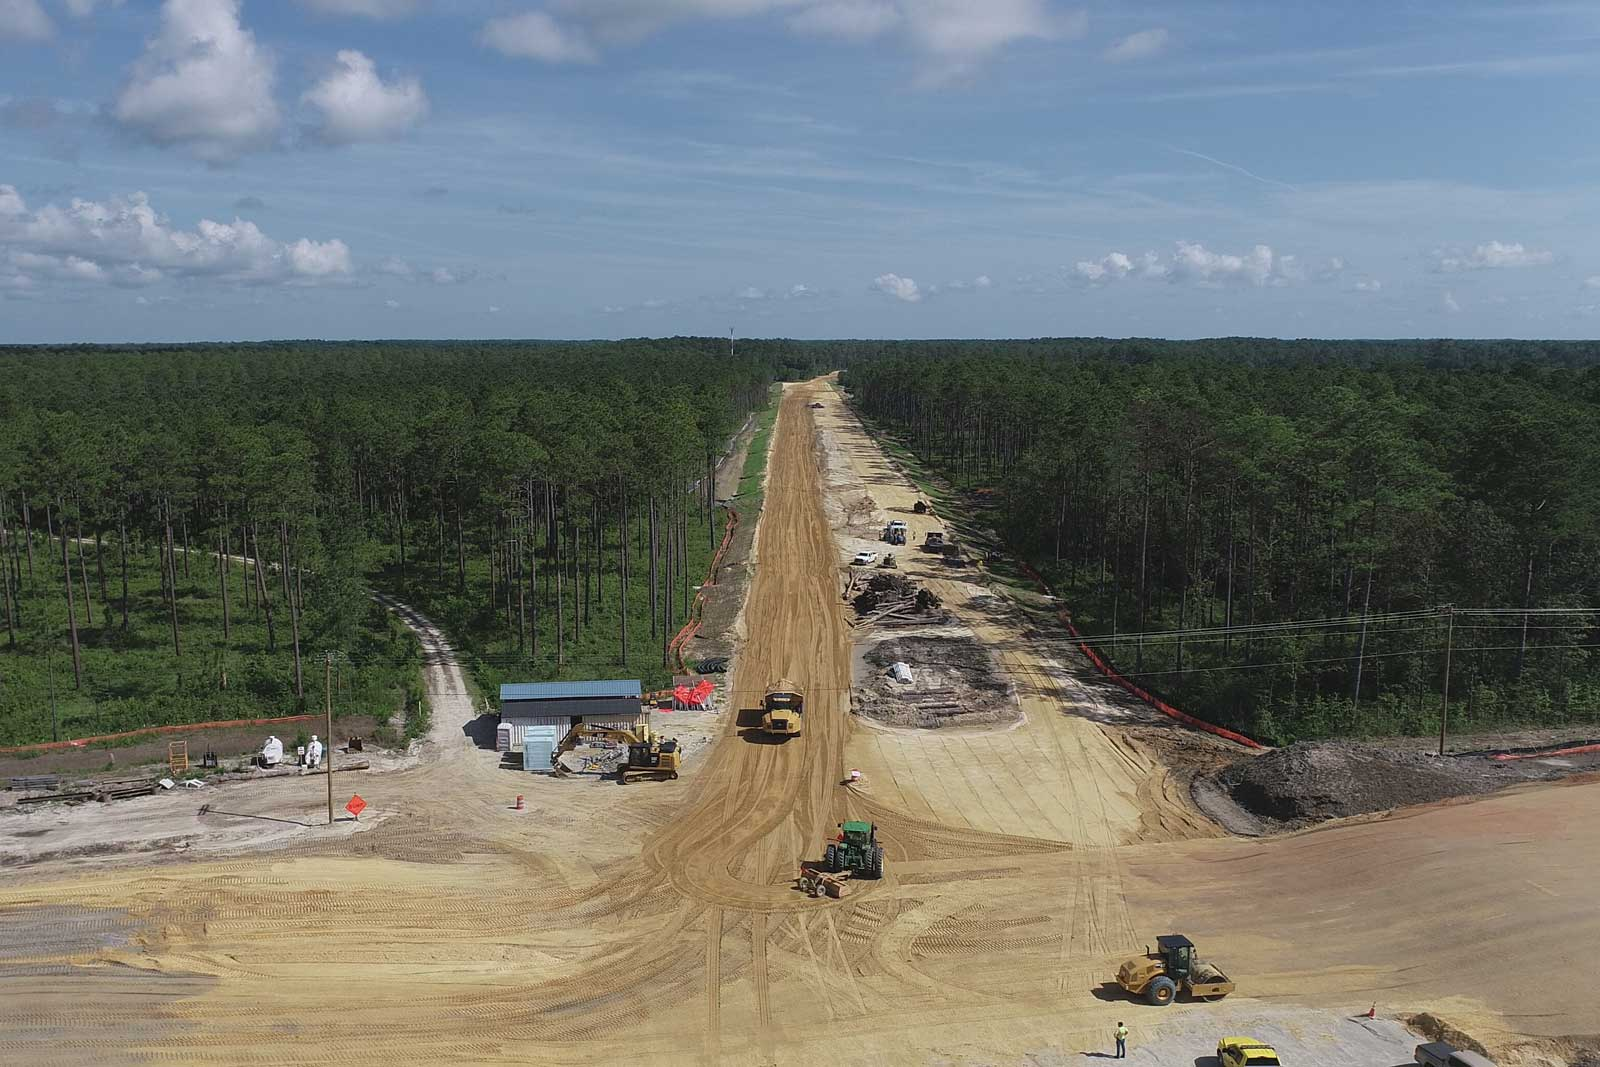 Grading and hauling operations are underway on the new alignment of the bypass. This is looking north from Sunset Drive.